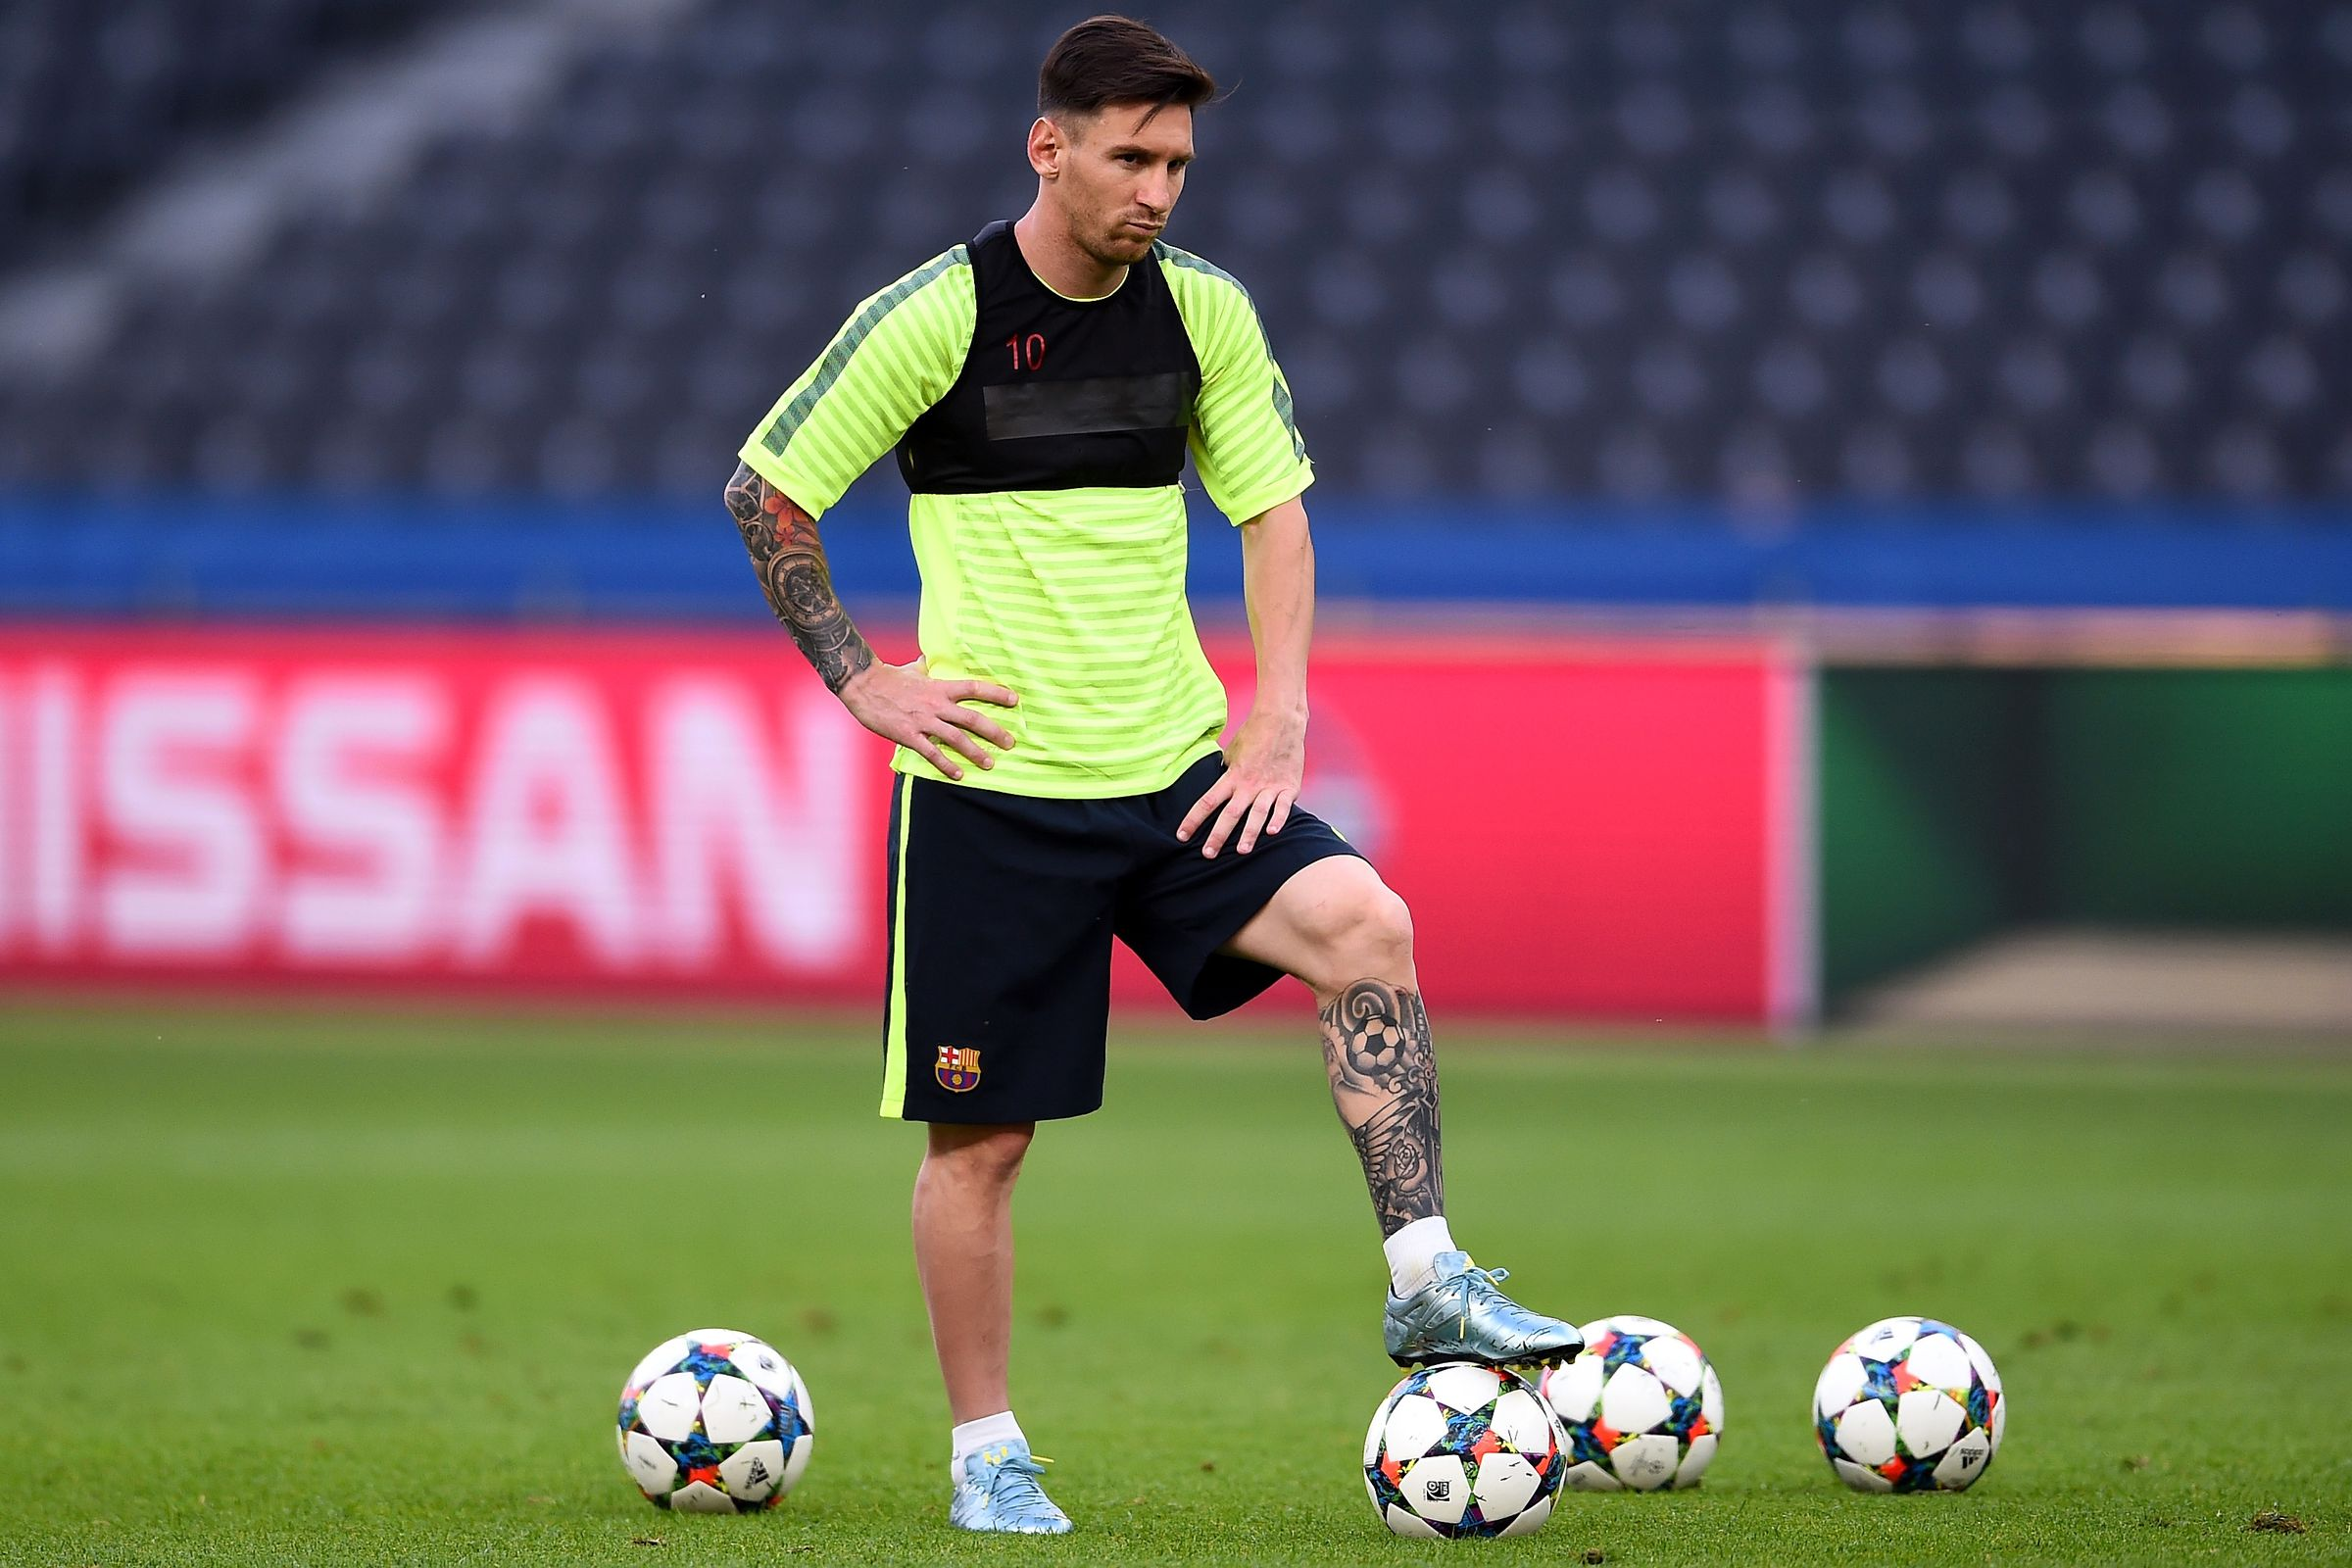 Messi trains normally ahead of Depor game